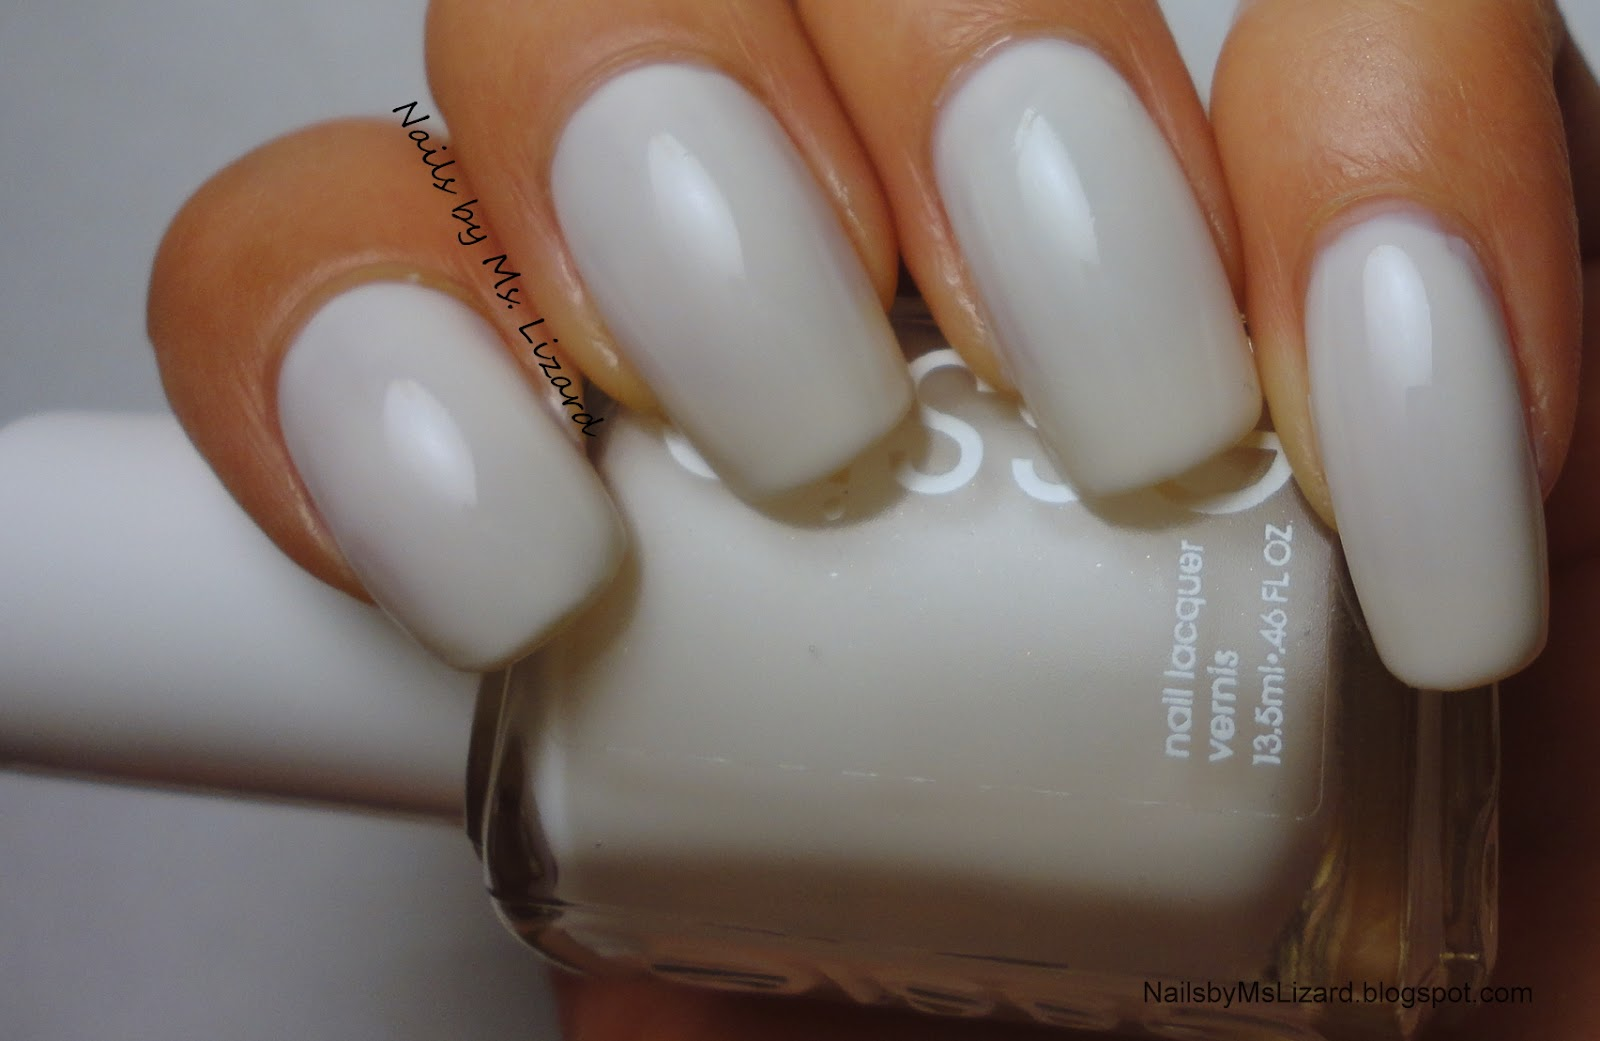 Nails by Ms. Lizard: NOTD: Essie Marshmallow